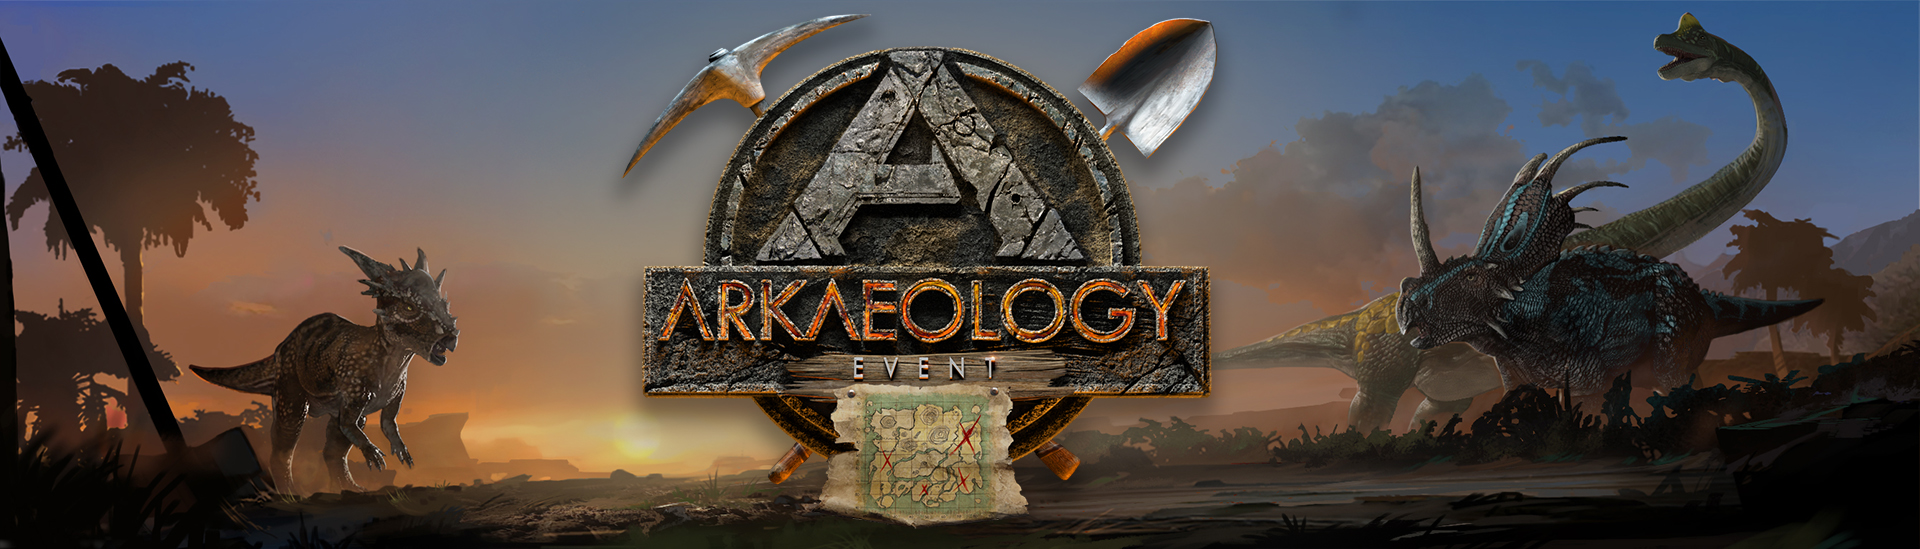 ark_arkaeologyEvent01.jpg